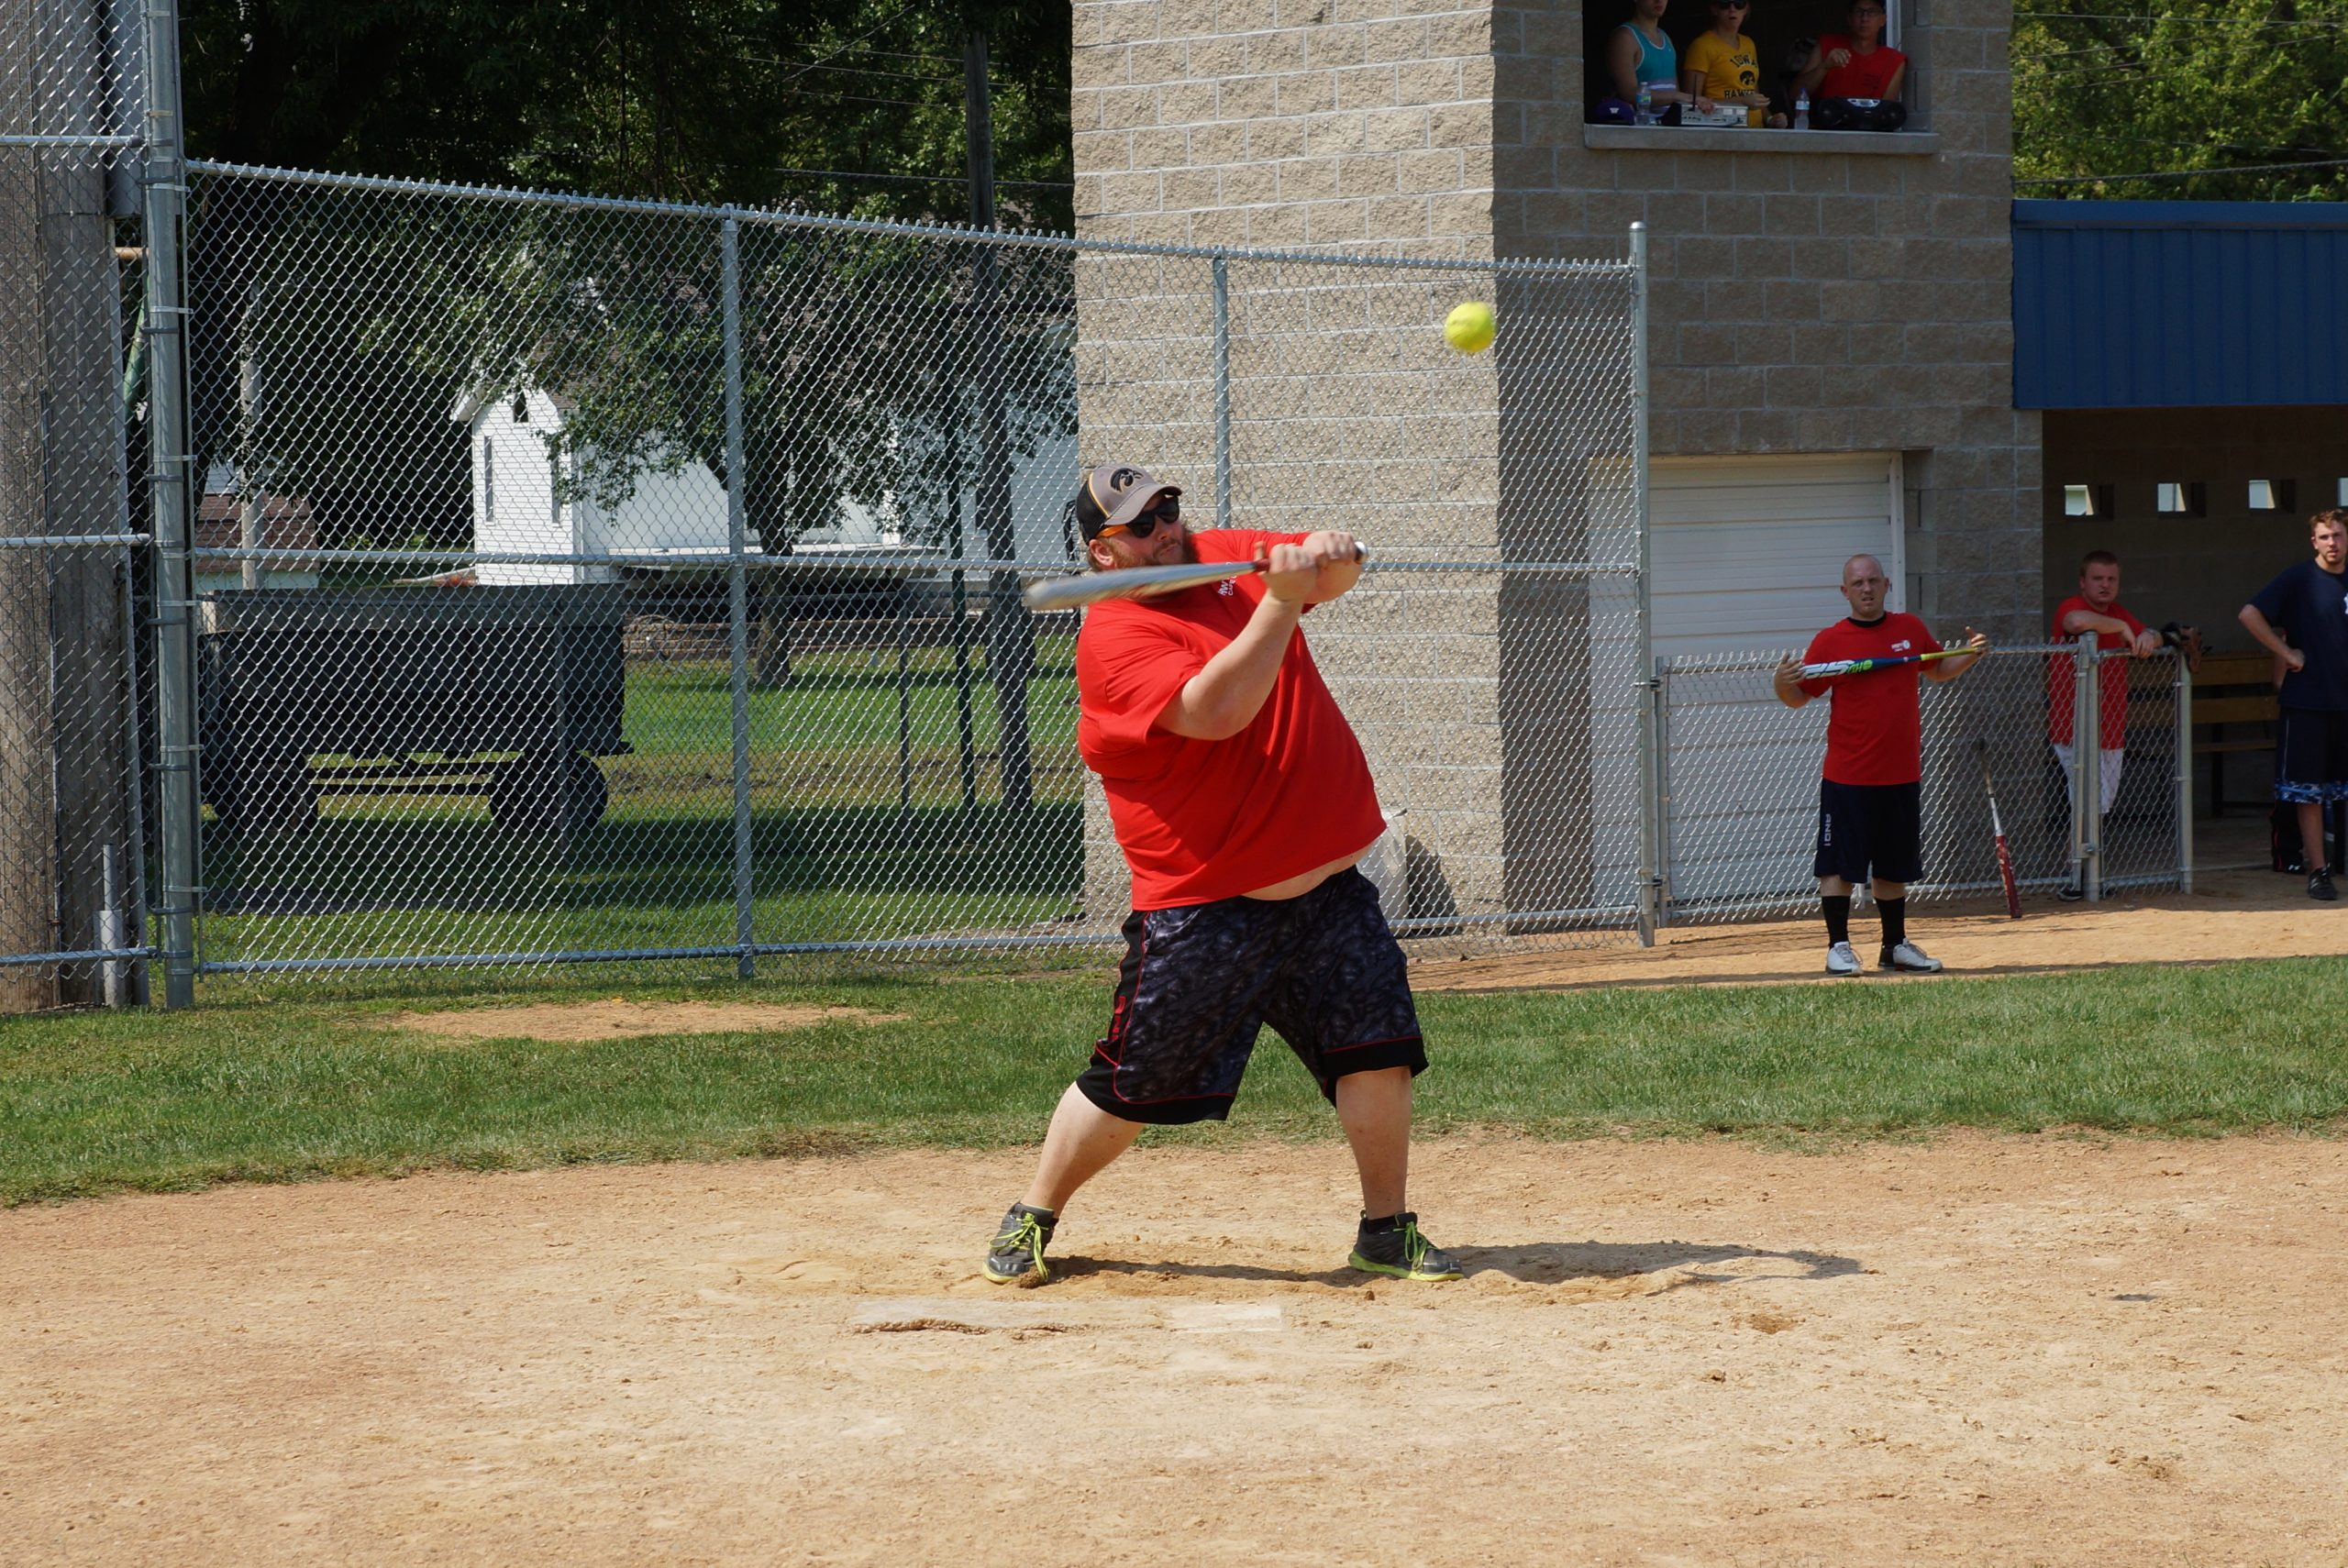 Ryan Shaffer, Manager of the HWY 7 slow pitch team takes a cut at the ball